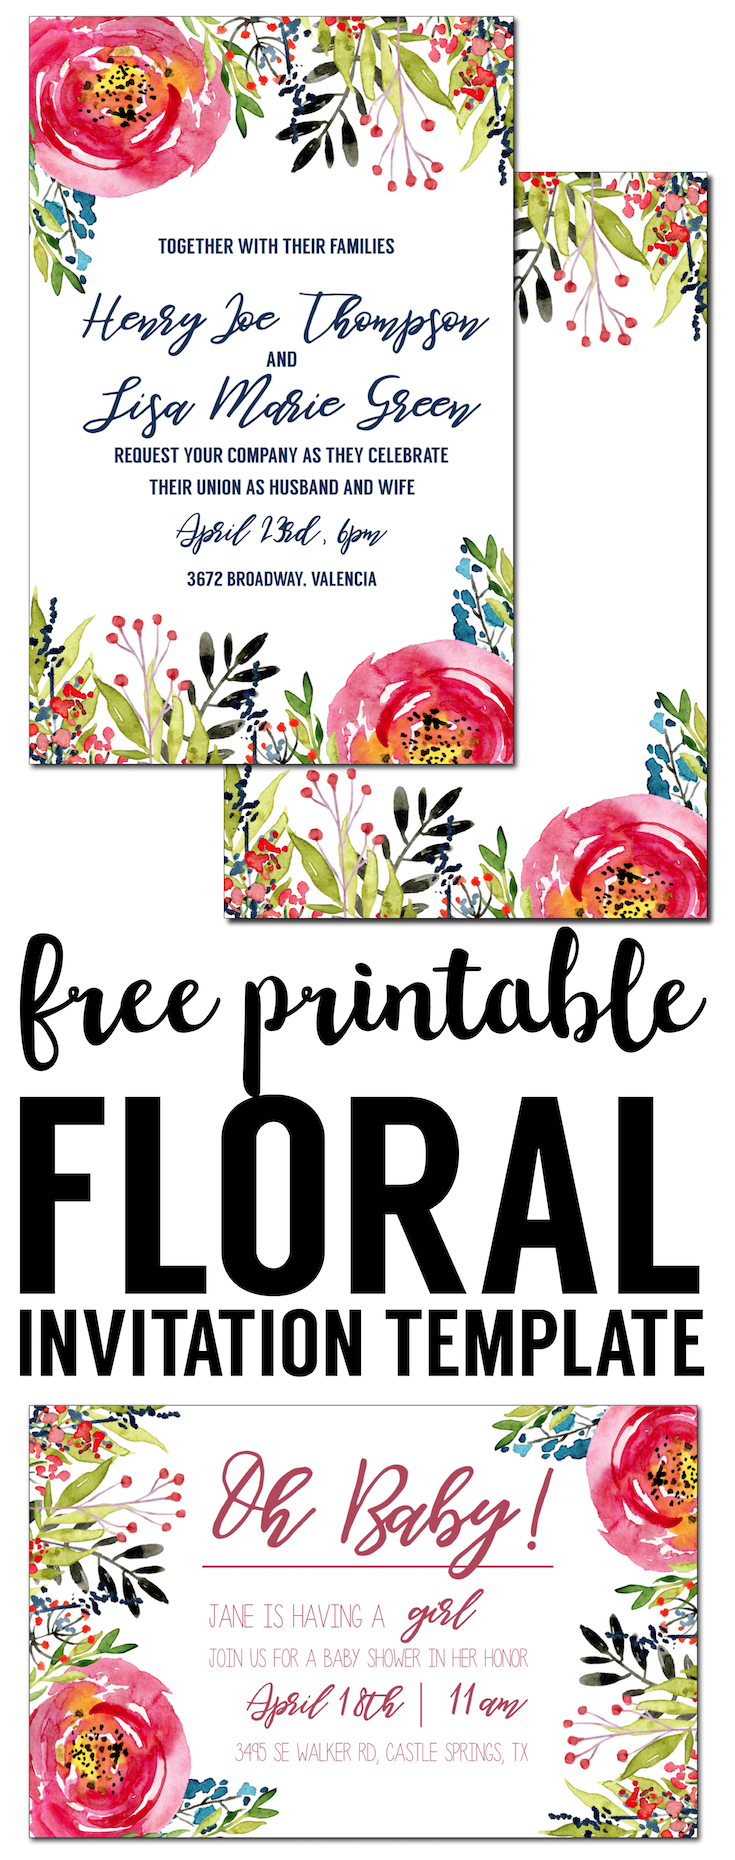 Floral Invitation Template Free Printable. Free Invitation Template For A Birthday  Party, Wedding,